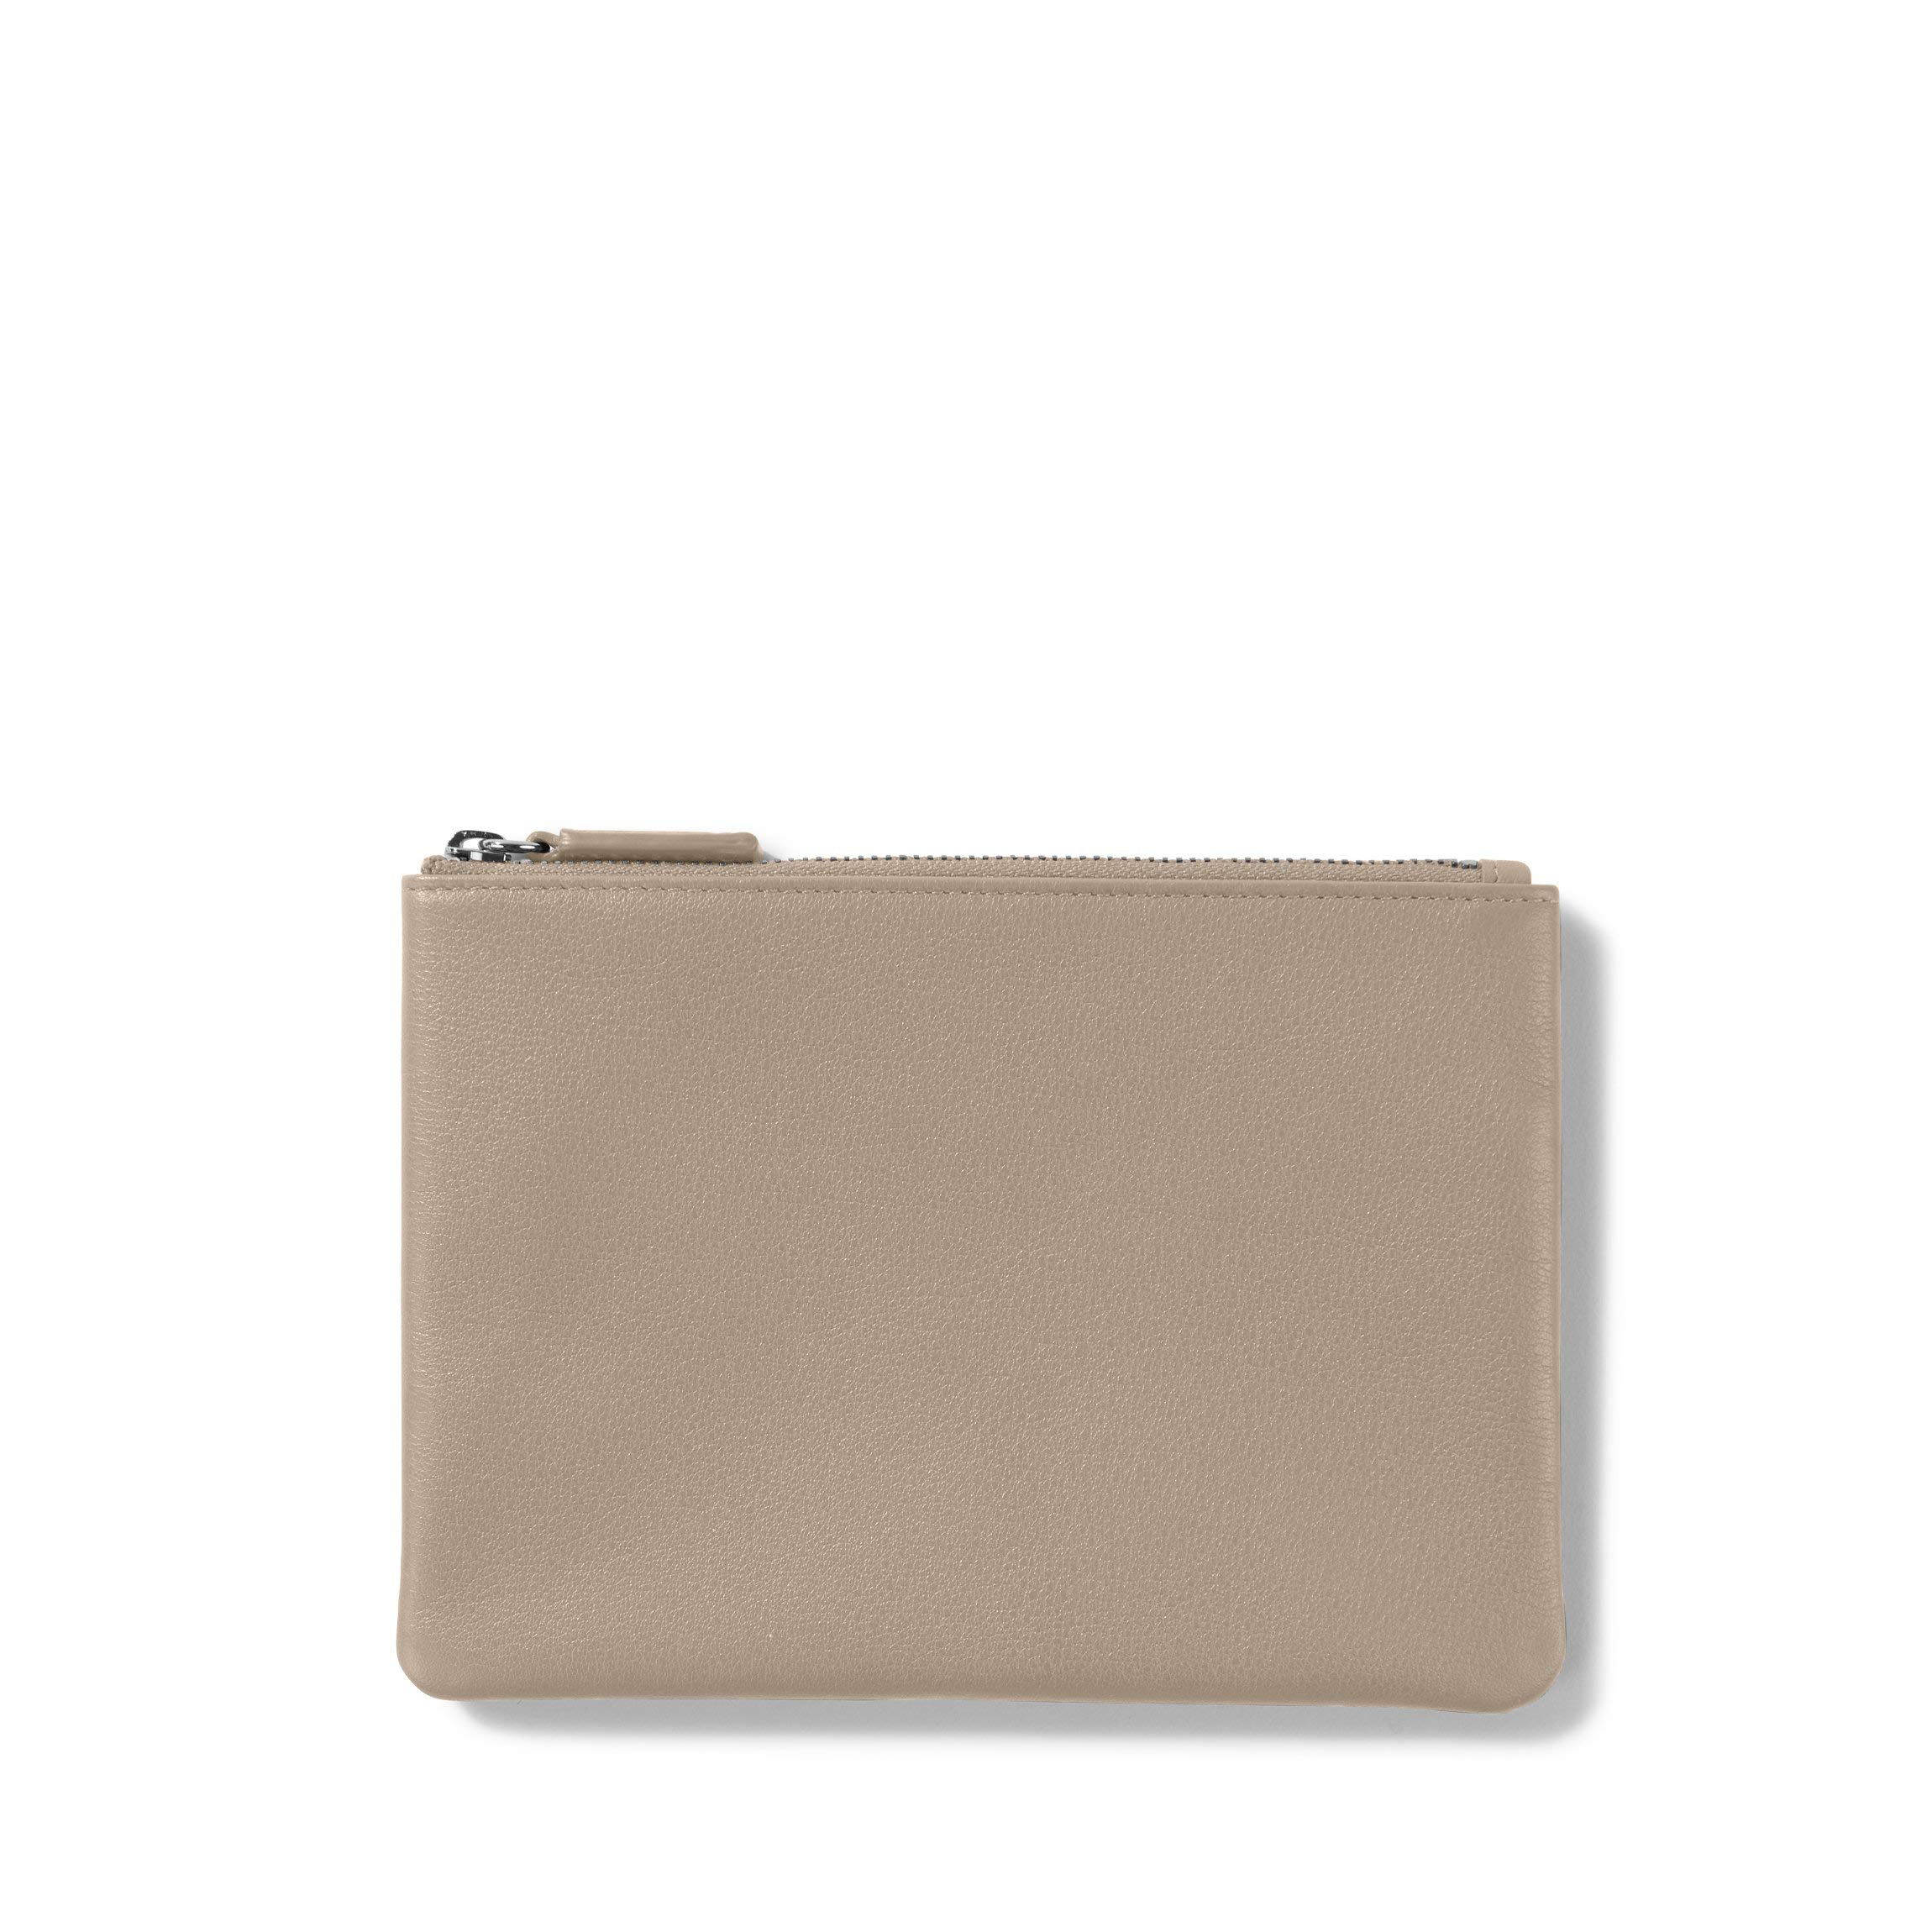 Small Pouch - Full Grain Leather Leather - Ginger (gray)